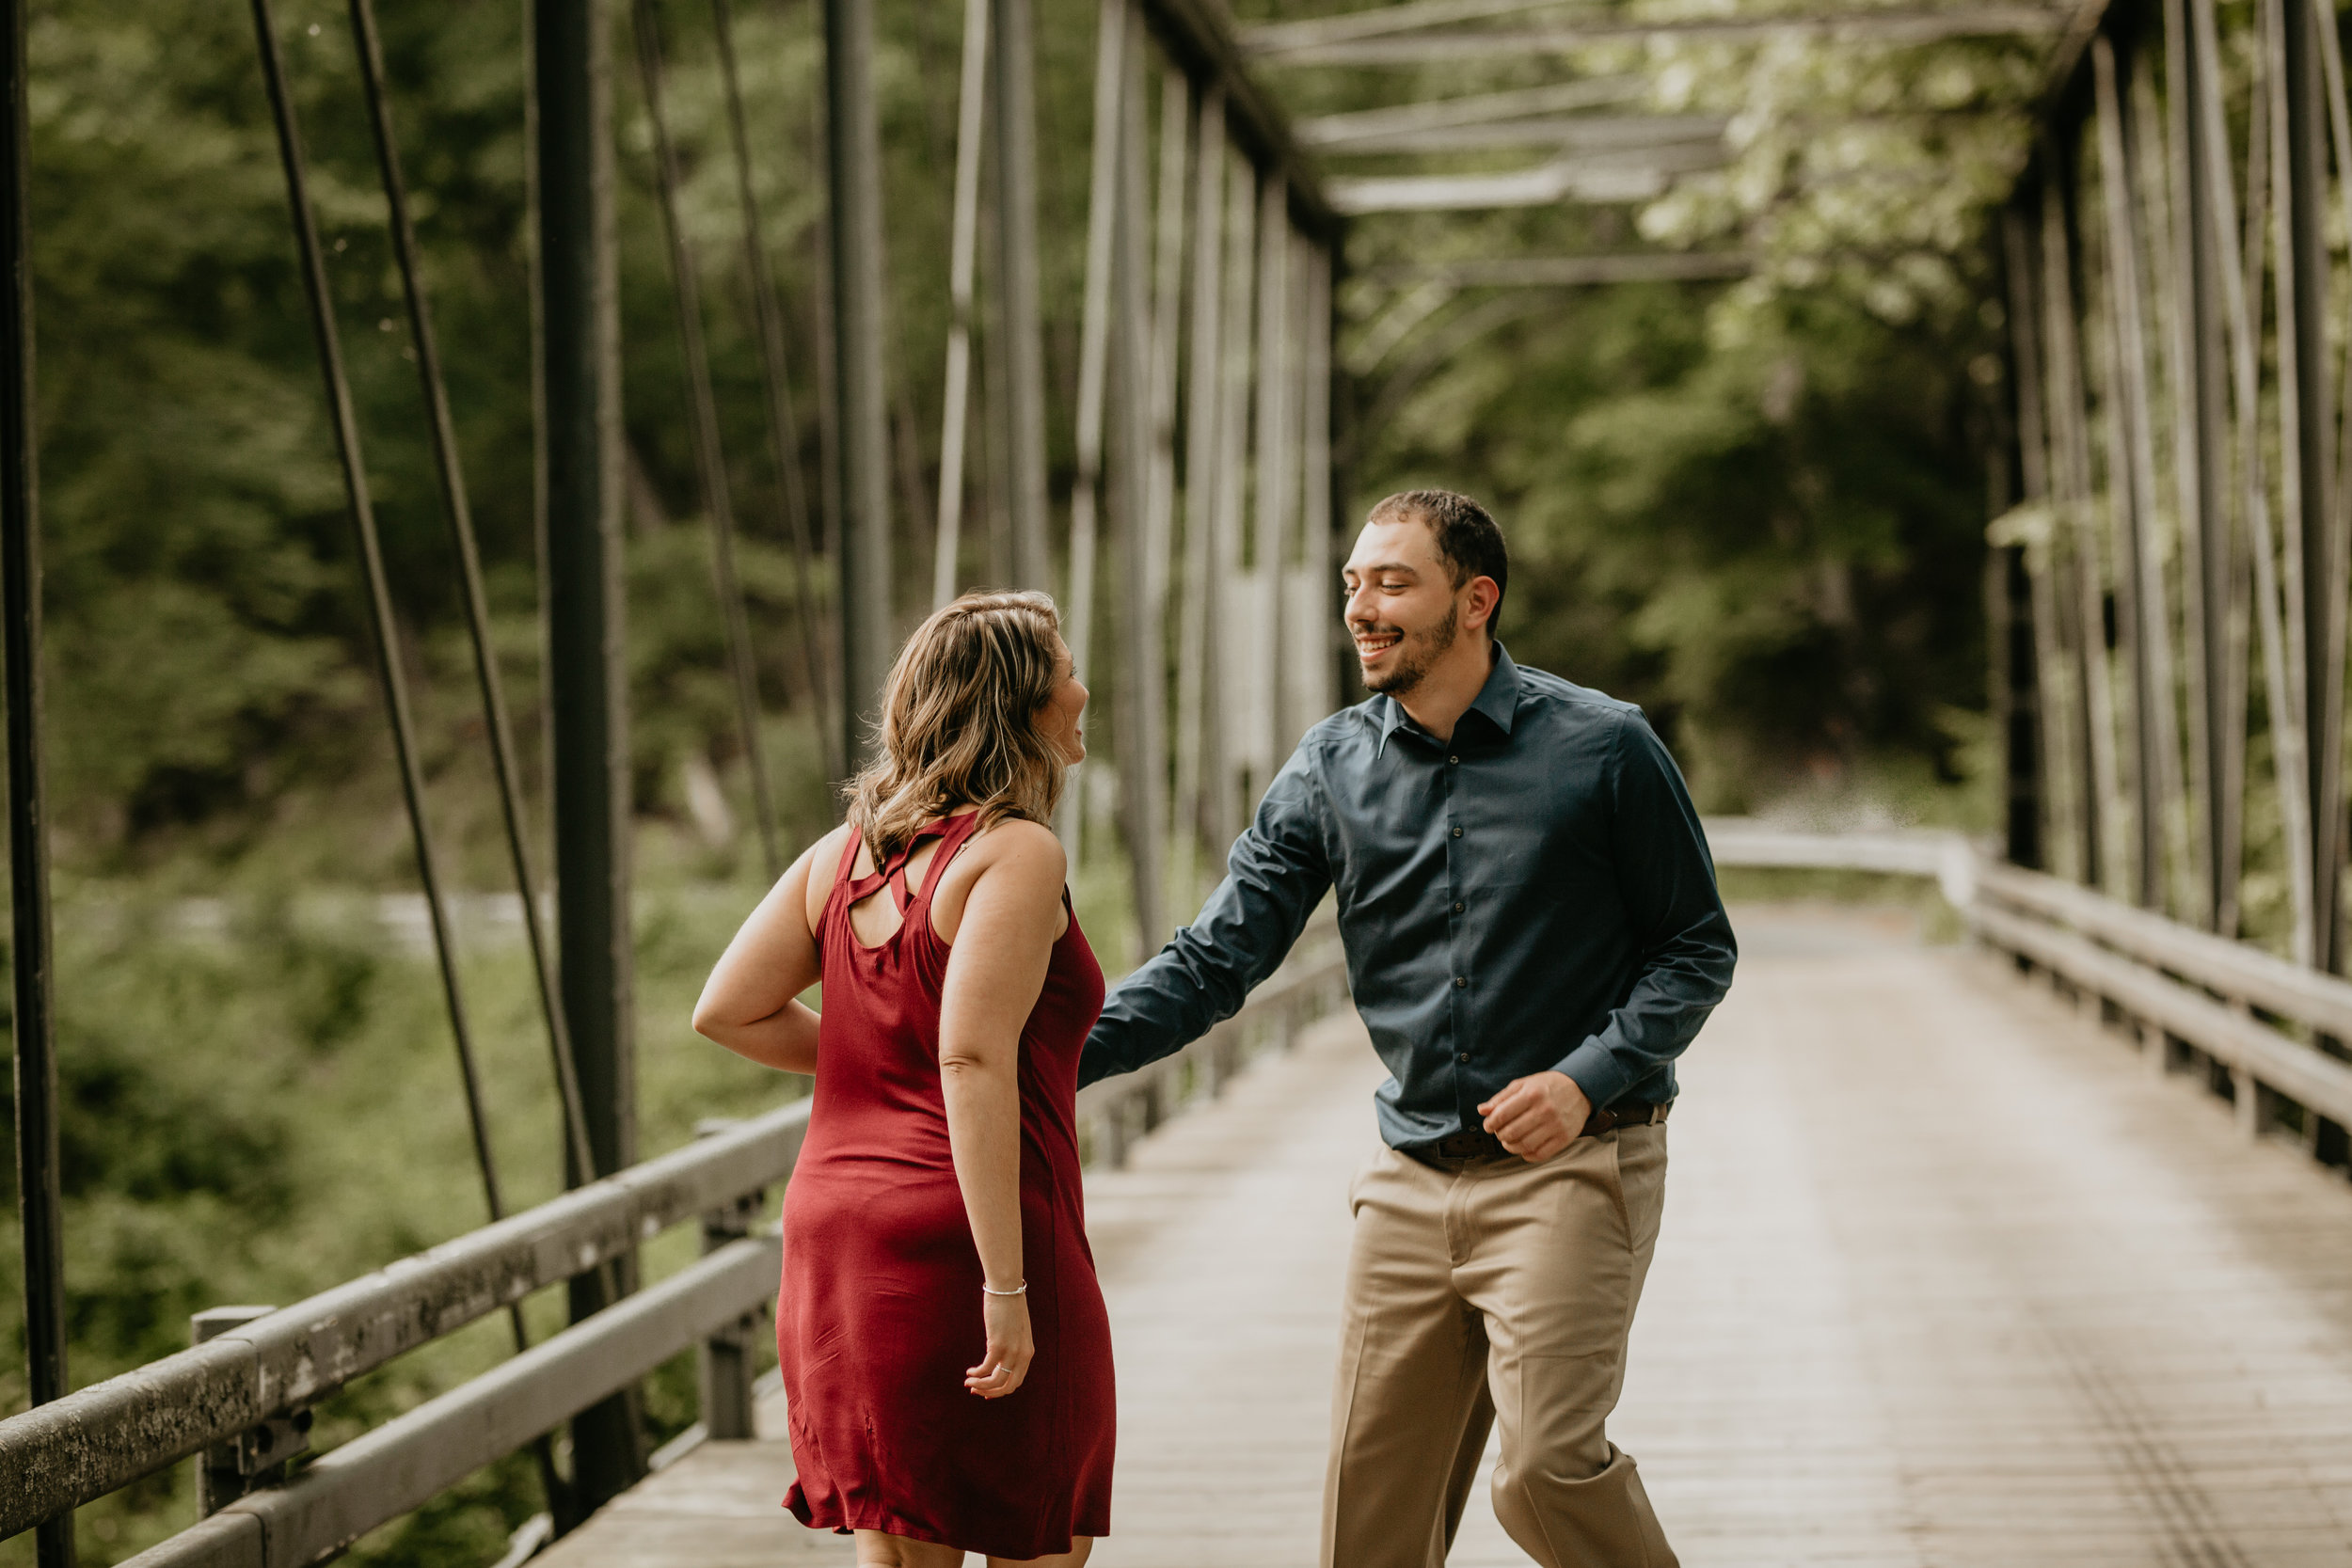 Nicole-Daacke-Photography-rock-state-park-overlook-king-queen-seat-maryland-hiking-adventure-engagement-session-photos-portraits-summer-bel-air-dog-engagement-session-7.jpg